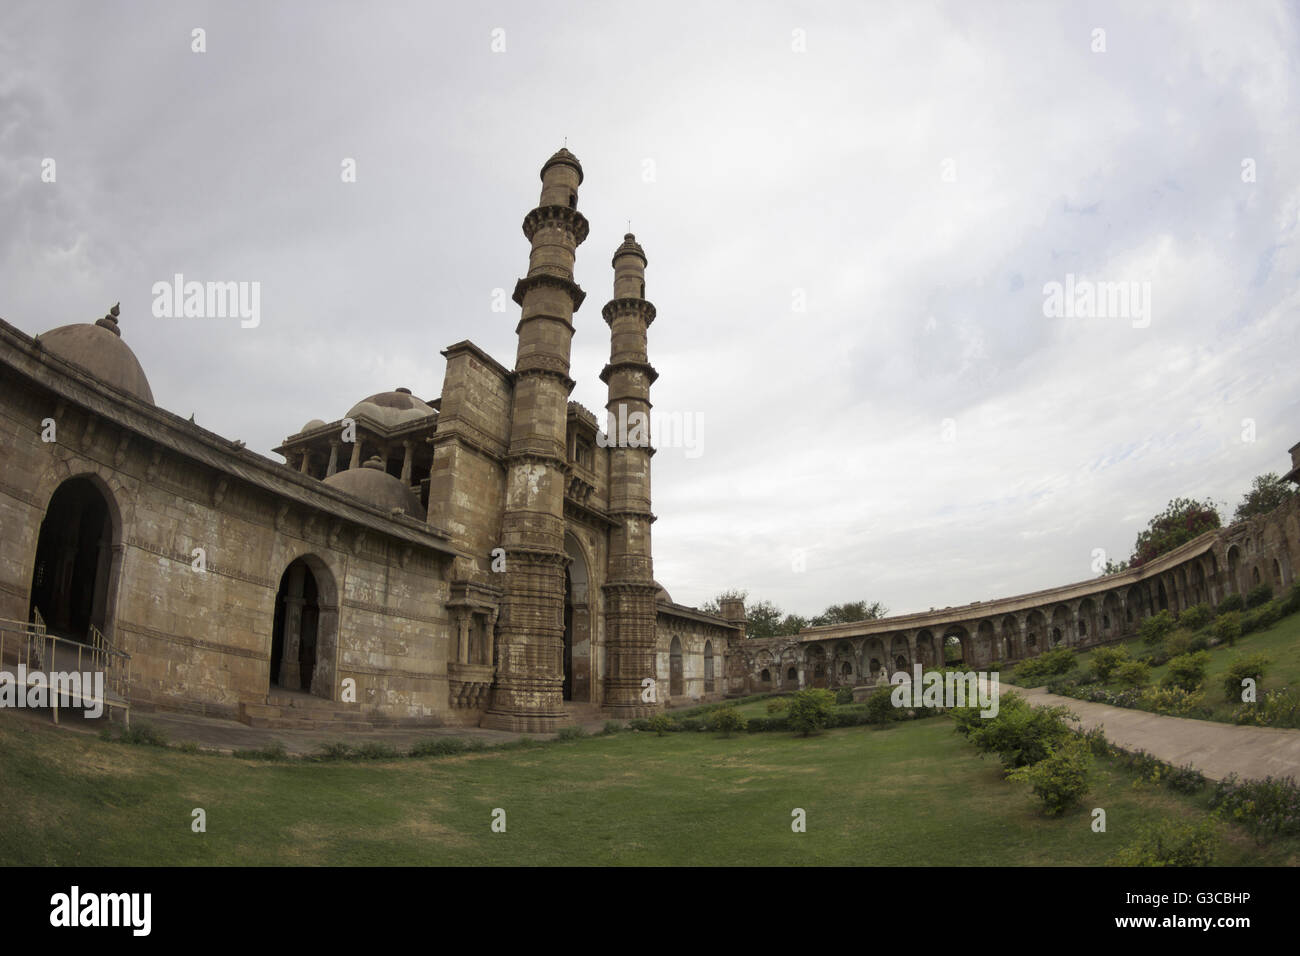 Entrance and courtyard. Jami Masjid or Mosque. Champaner Pavagadh Archaeological Park. UNESCO World Heritage Site. Stock Photo